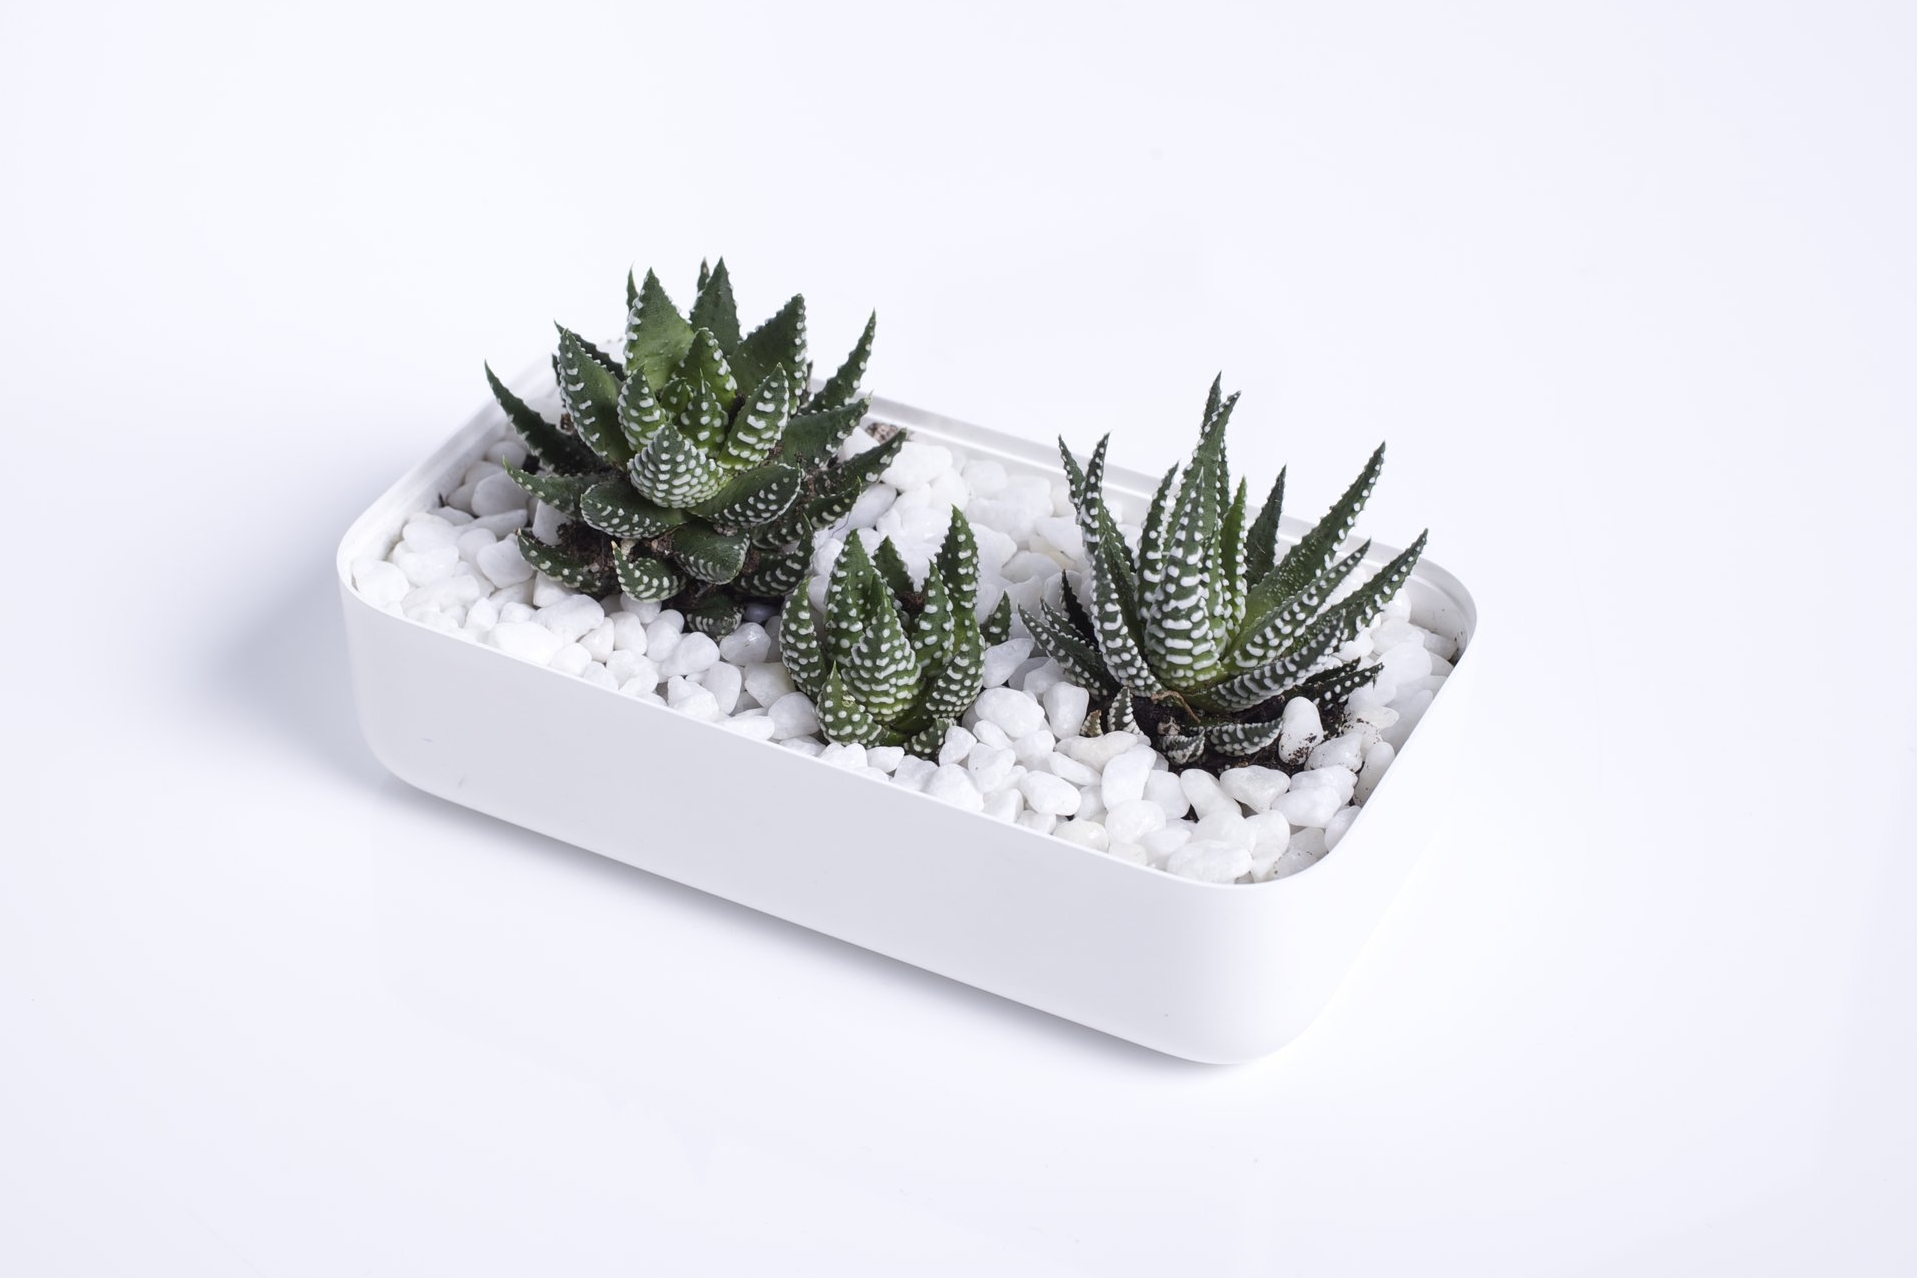 whiteboxlab_planter-2.jpg